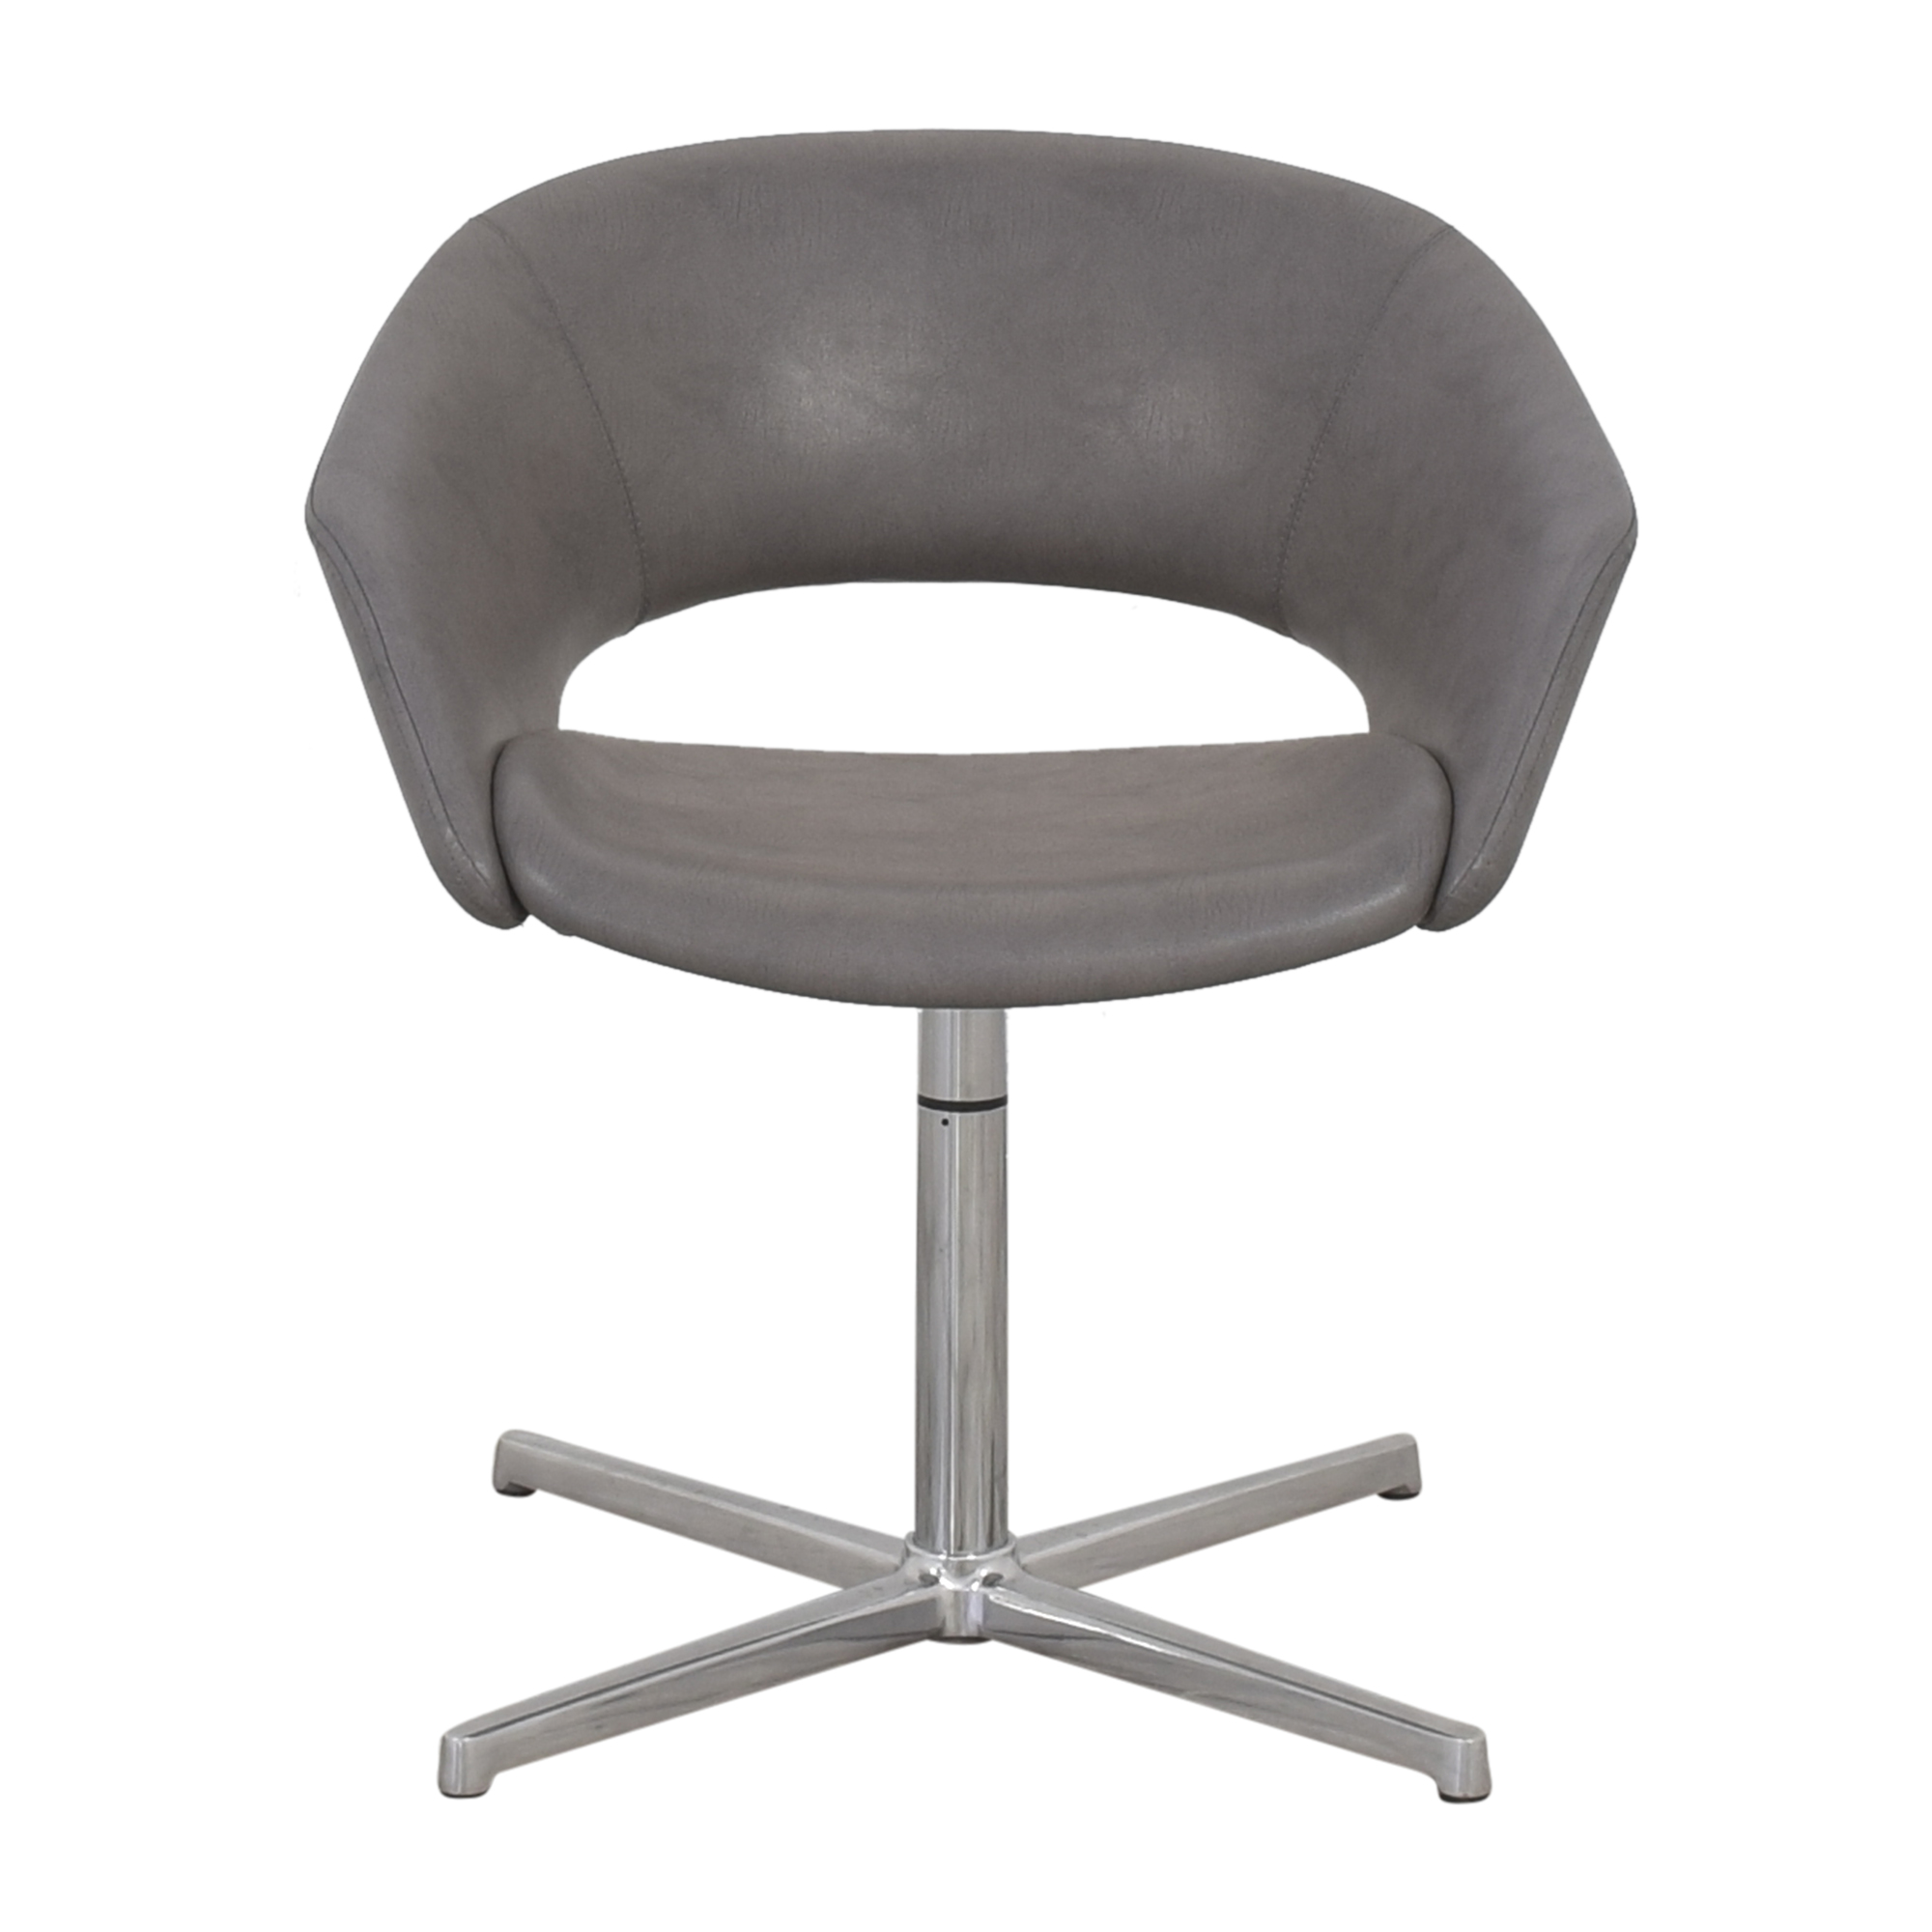 Leland International Leland Mod Pedestal Swivel Chair second hand